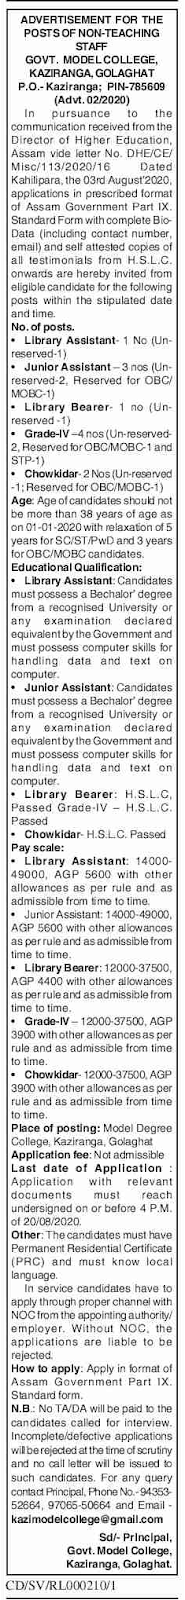 Recruitment of Library Assistant and Library Bearer at Government Model College, Kaziranga